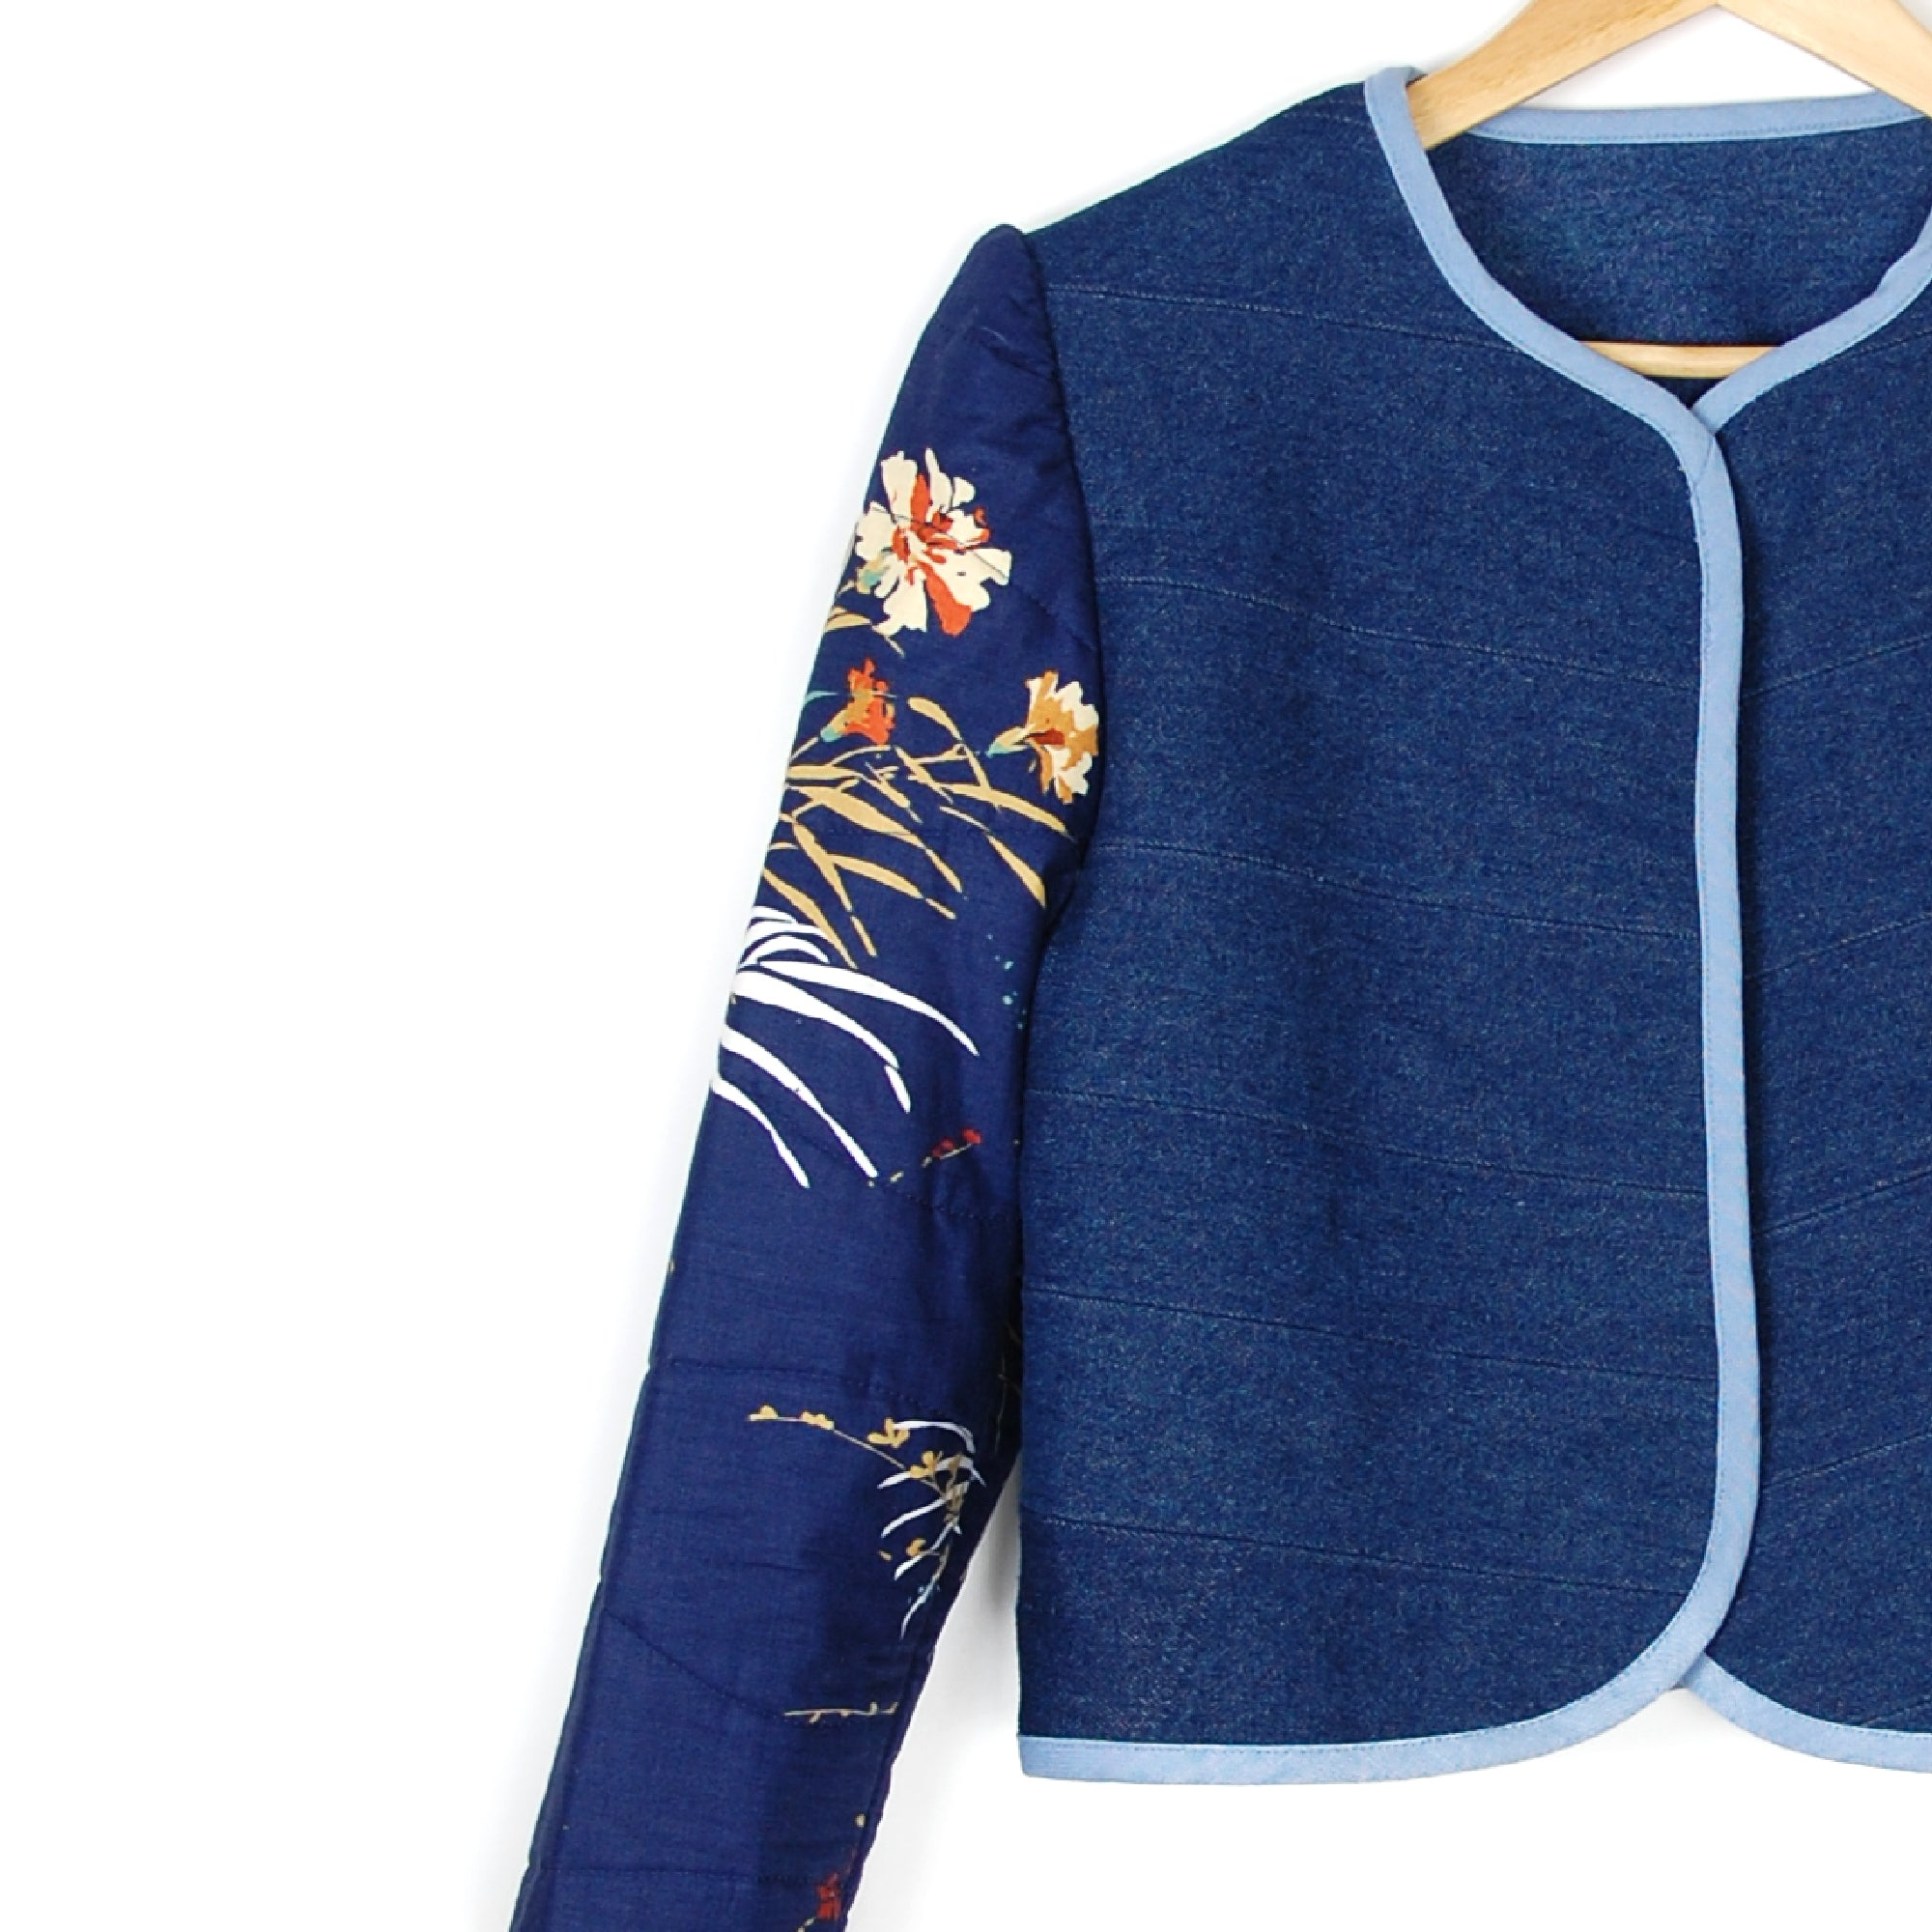 THE DARK CARNATION QUILTED JACKET - Late to the Party